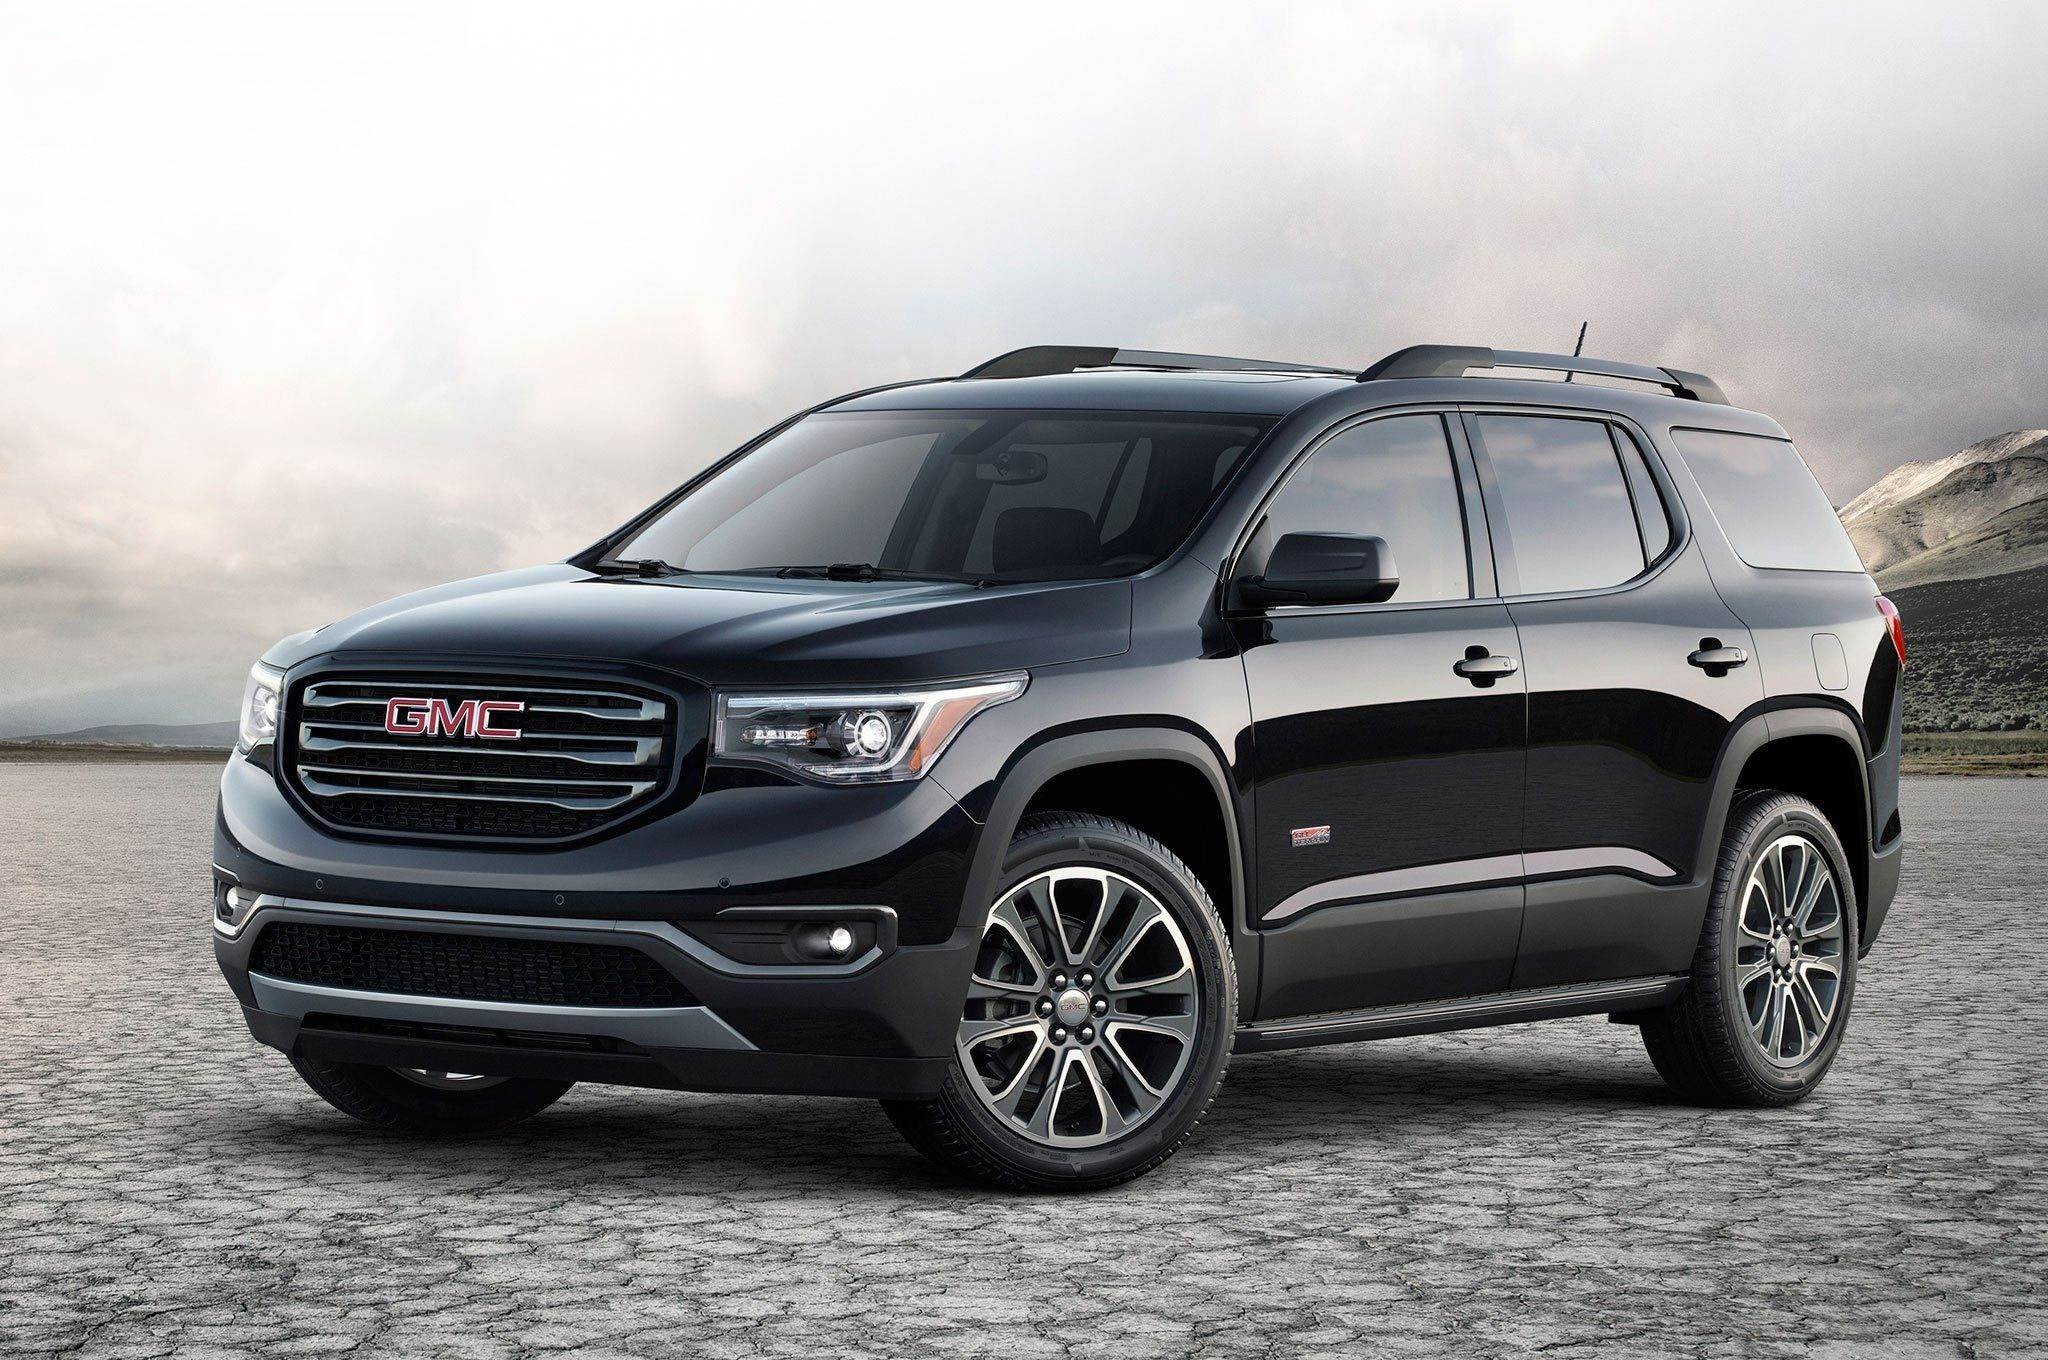 2020 Gmc Envoy Car Specs 2019 Picture Release Date And Review Suv Cars Gmc Envoy New Suv